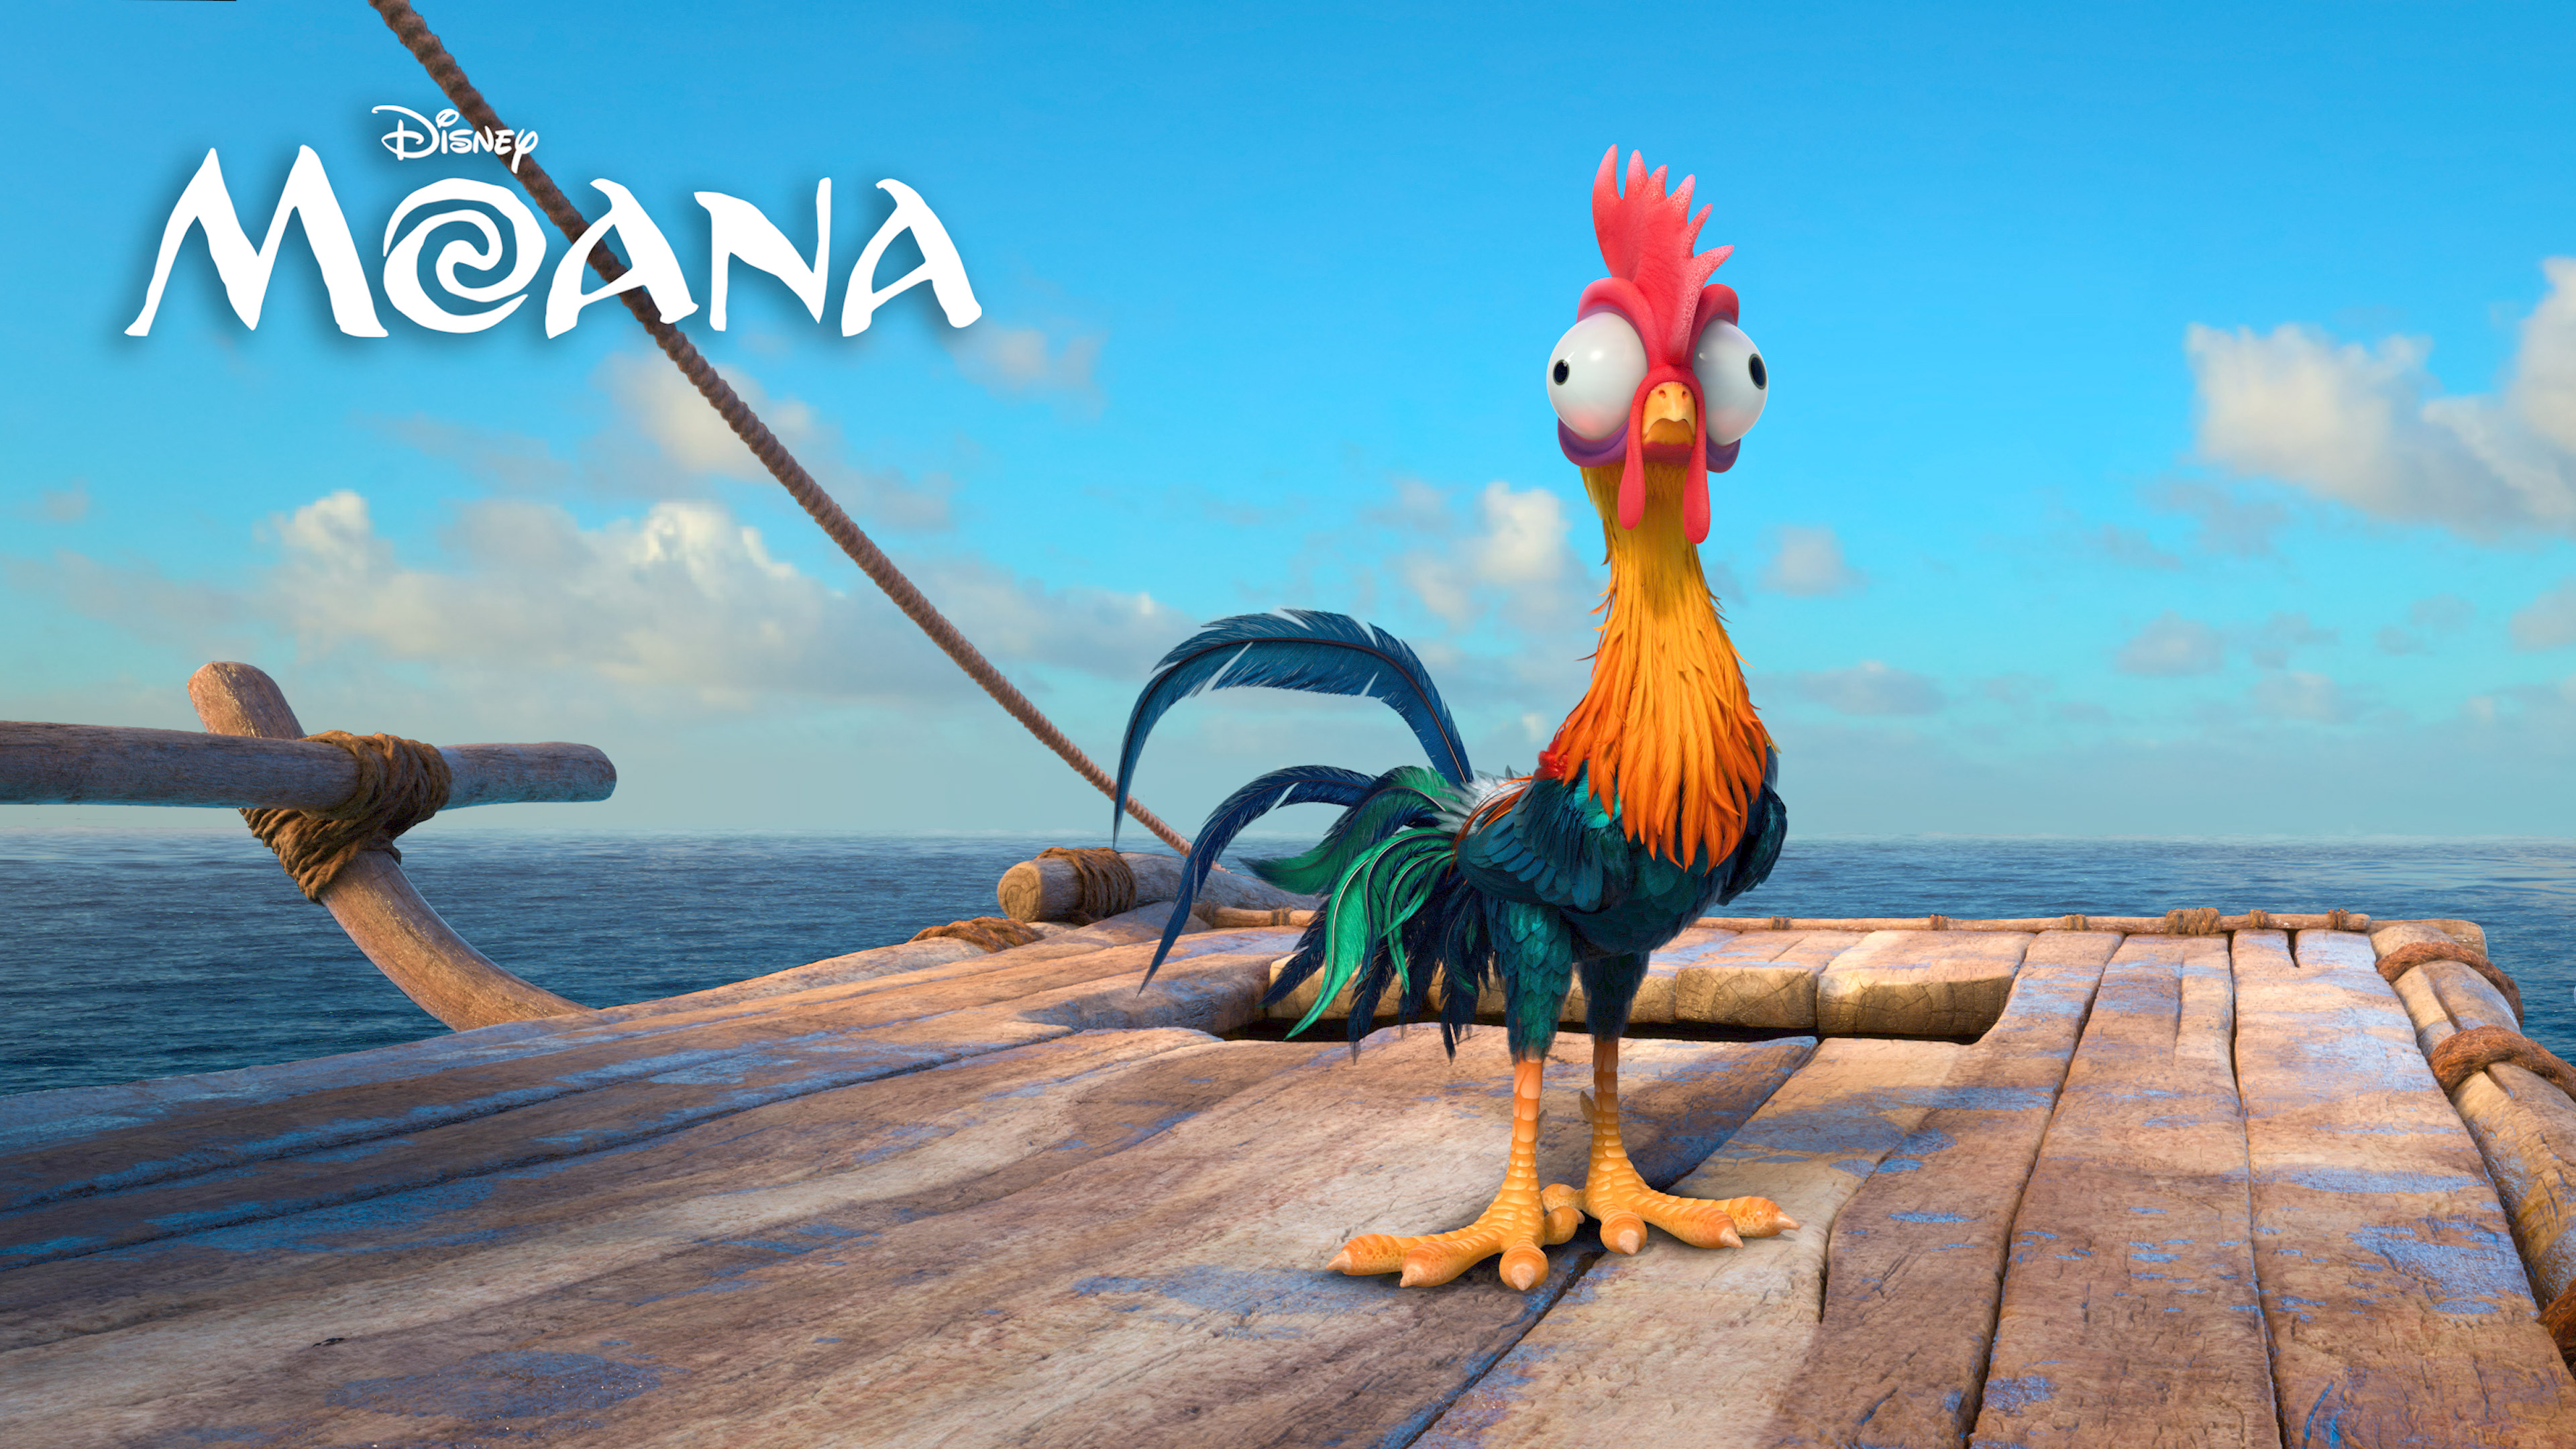 http://hdqwalls.com/wallpapers/heihei-moana-4k-do.jpg